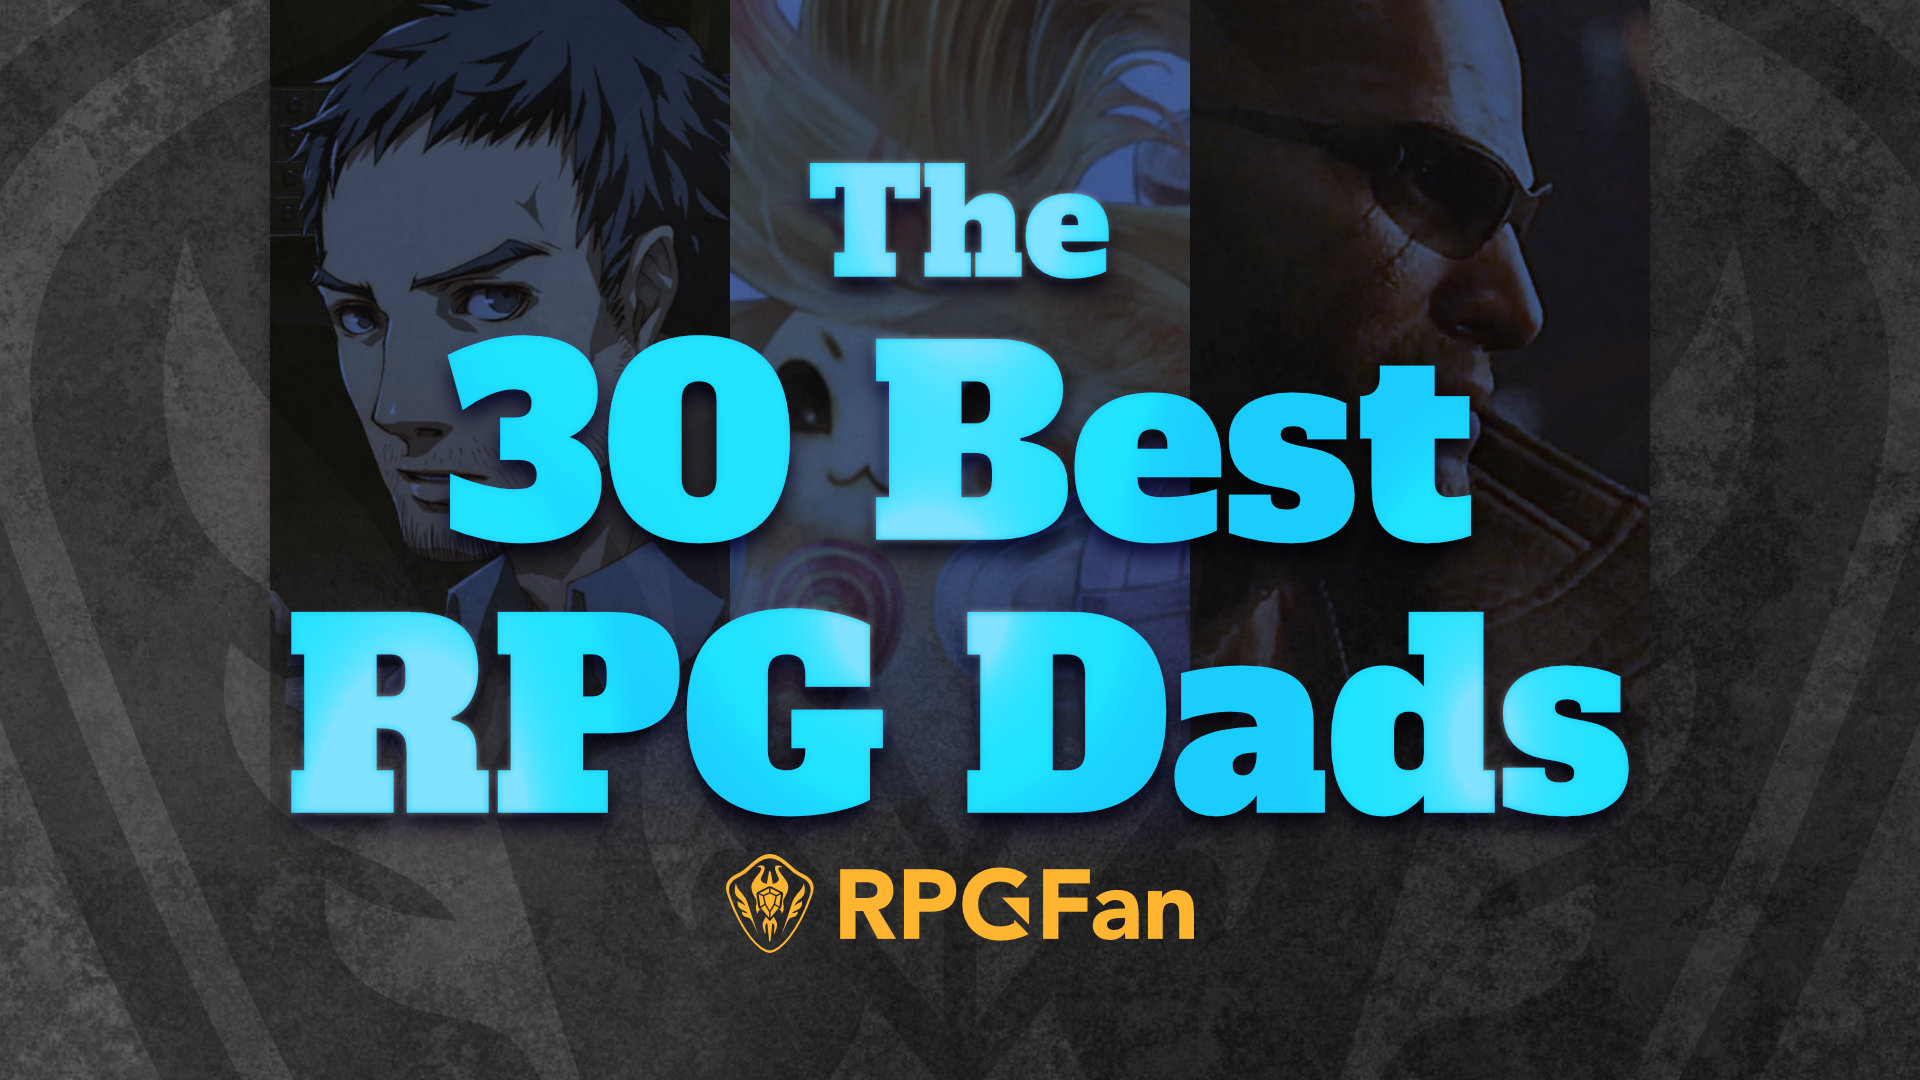 The 30 Best RPG Dads Featured